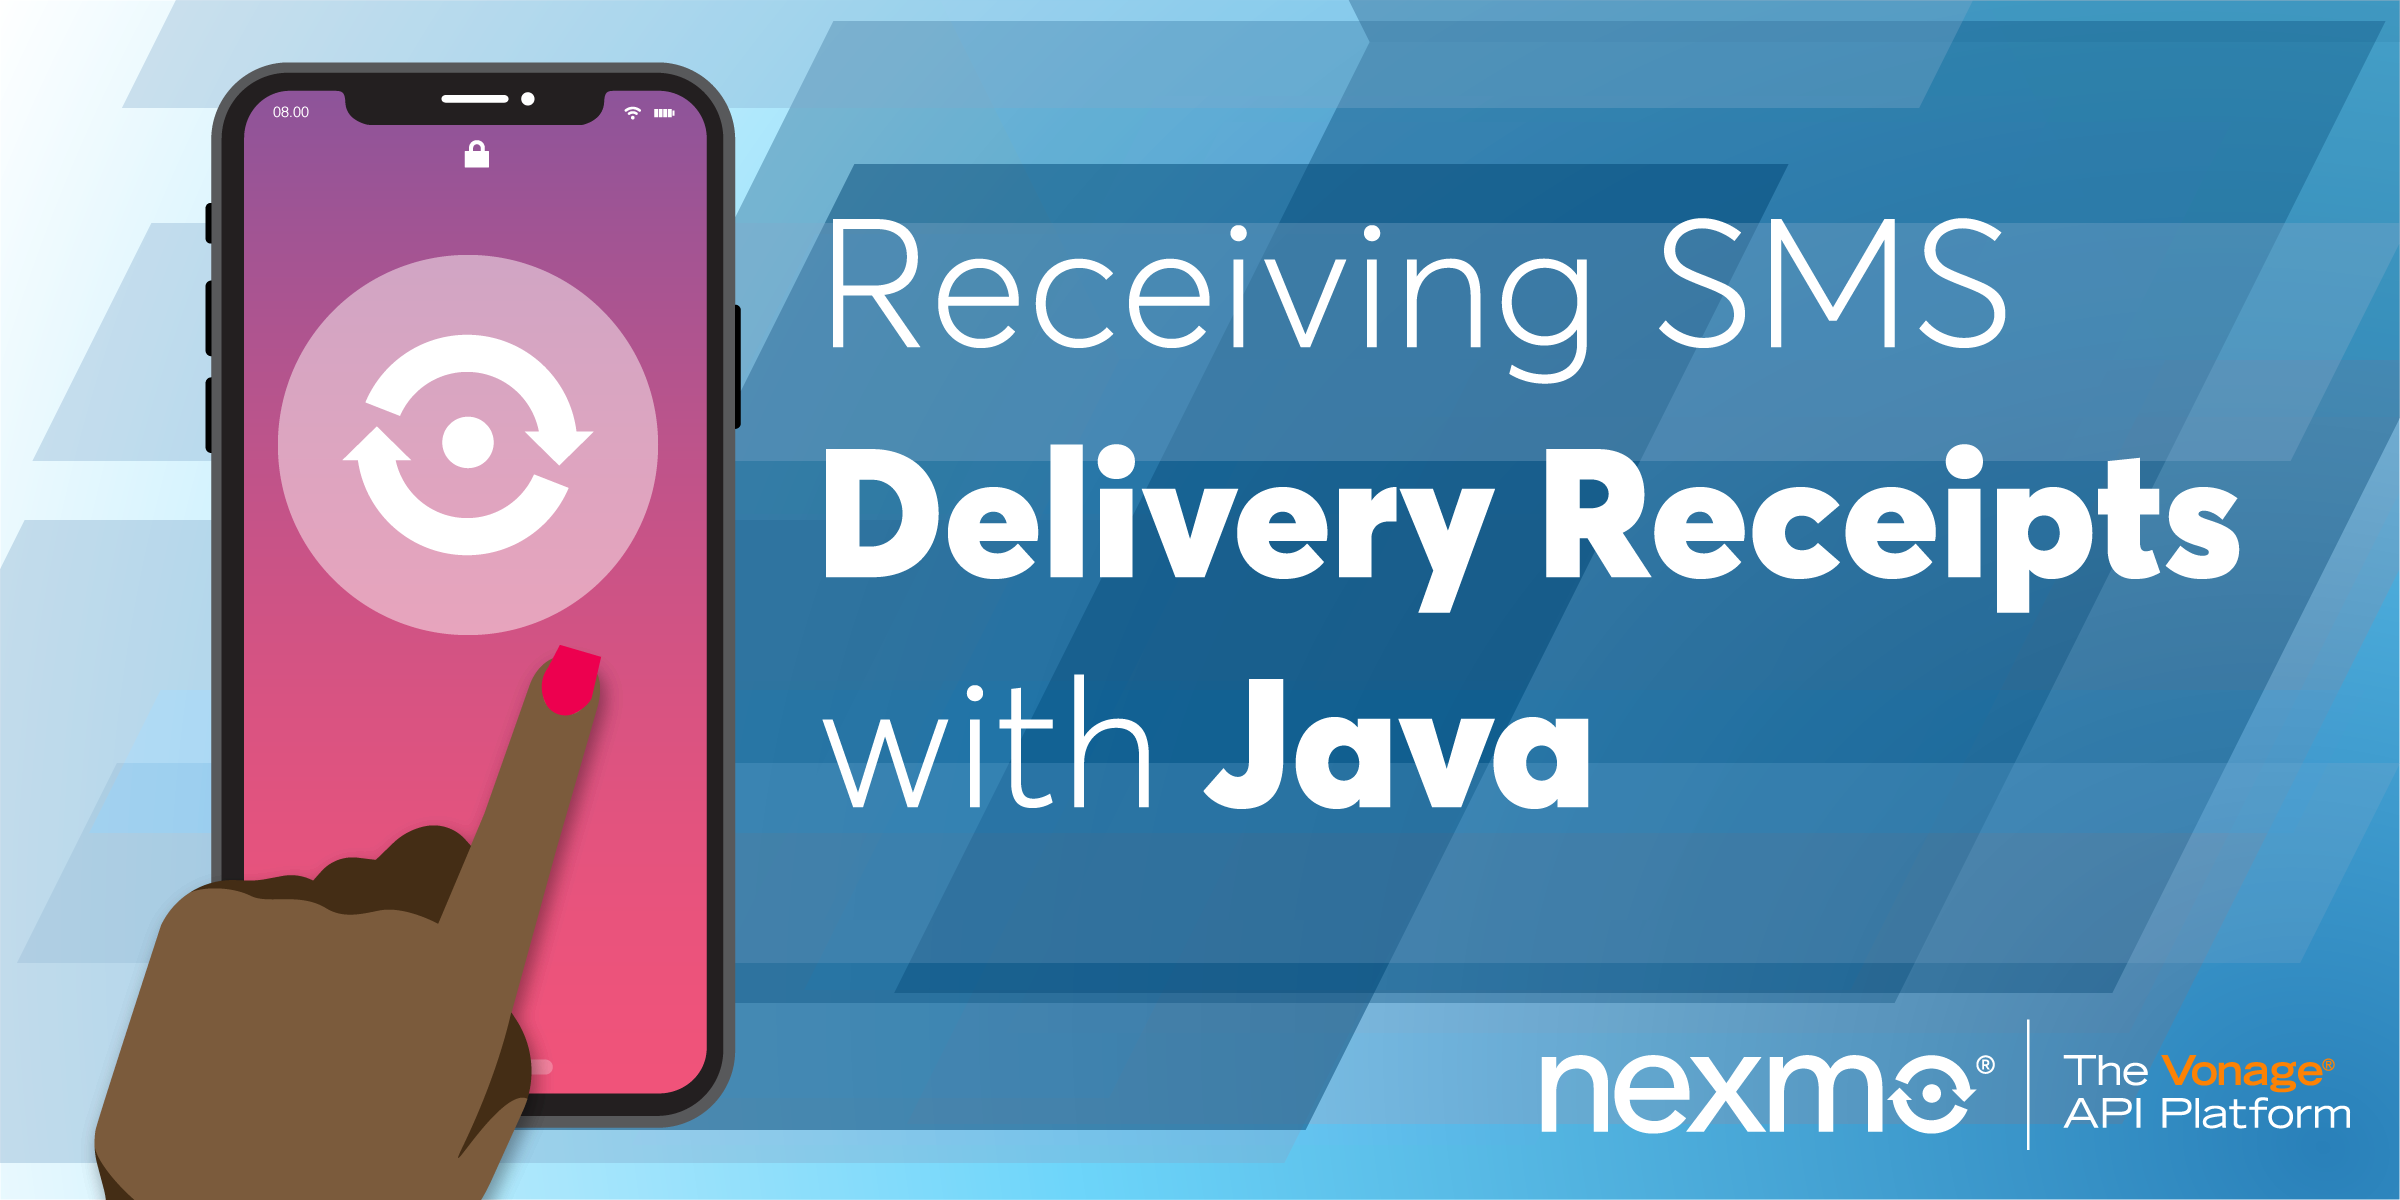 Receiving SMS Delivery Receipts with Java